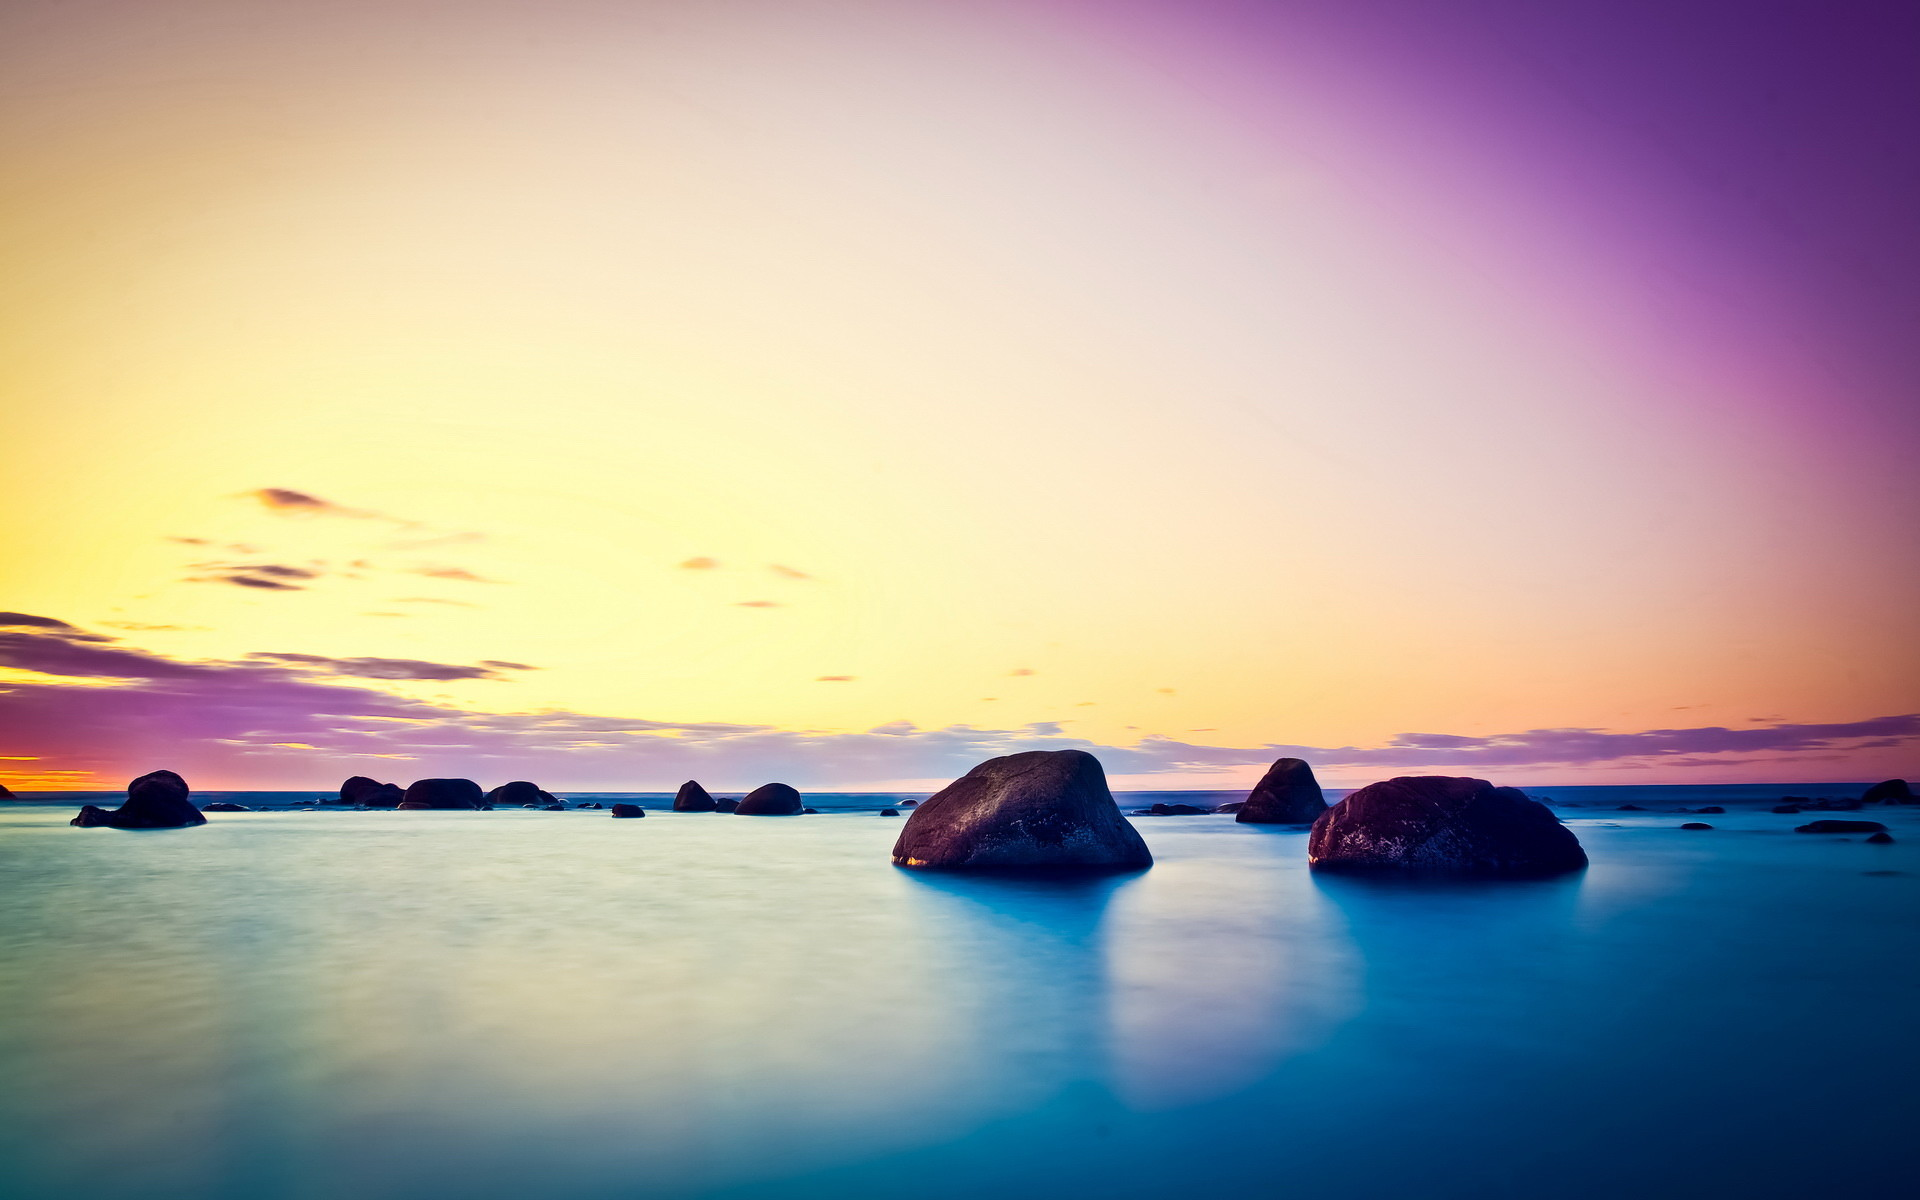 1920x1200 Peaceful Wallpapers Widescreen Download 2560x1600 Calm